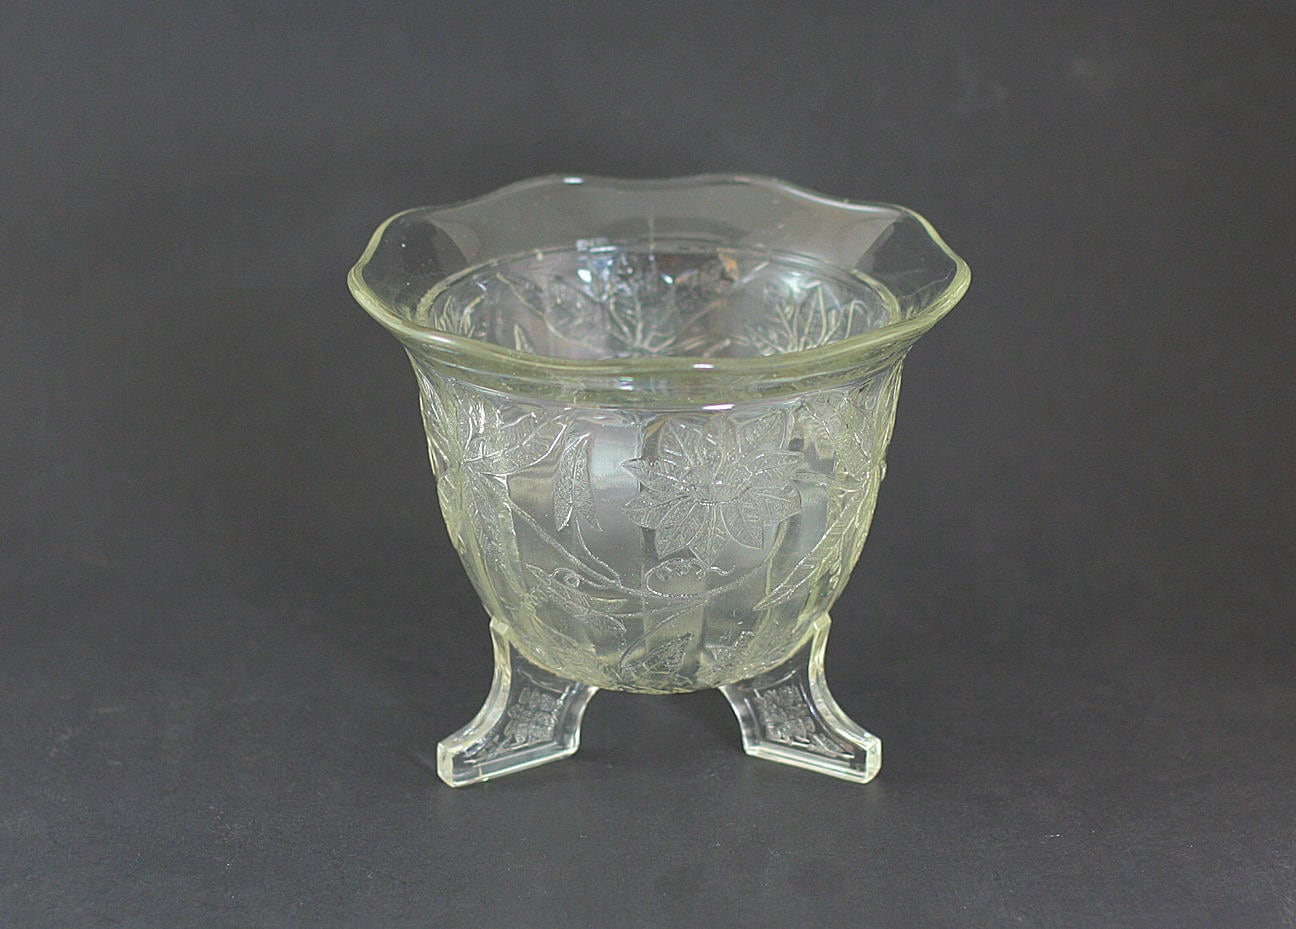 Rare Jeannette Depression Glass Crystal Floral Poinsettia 3